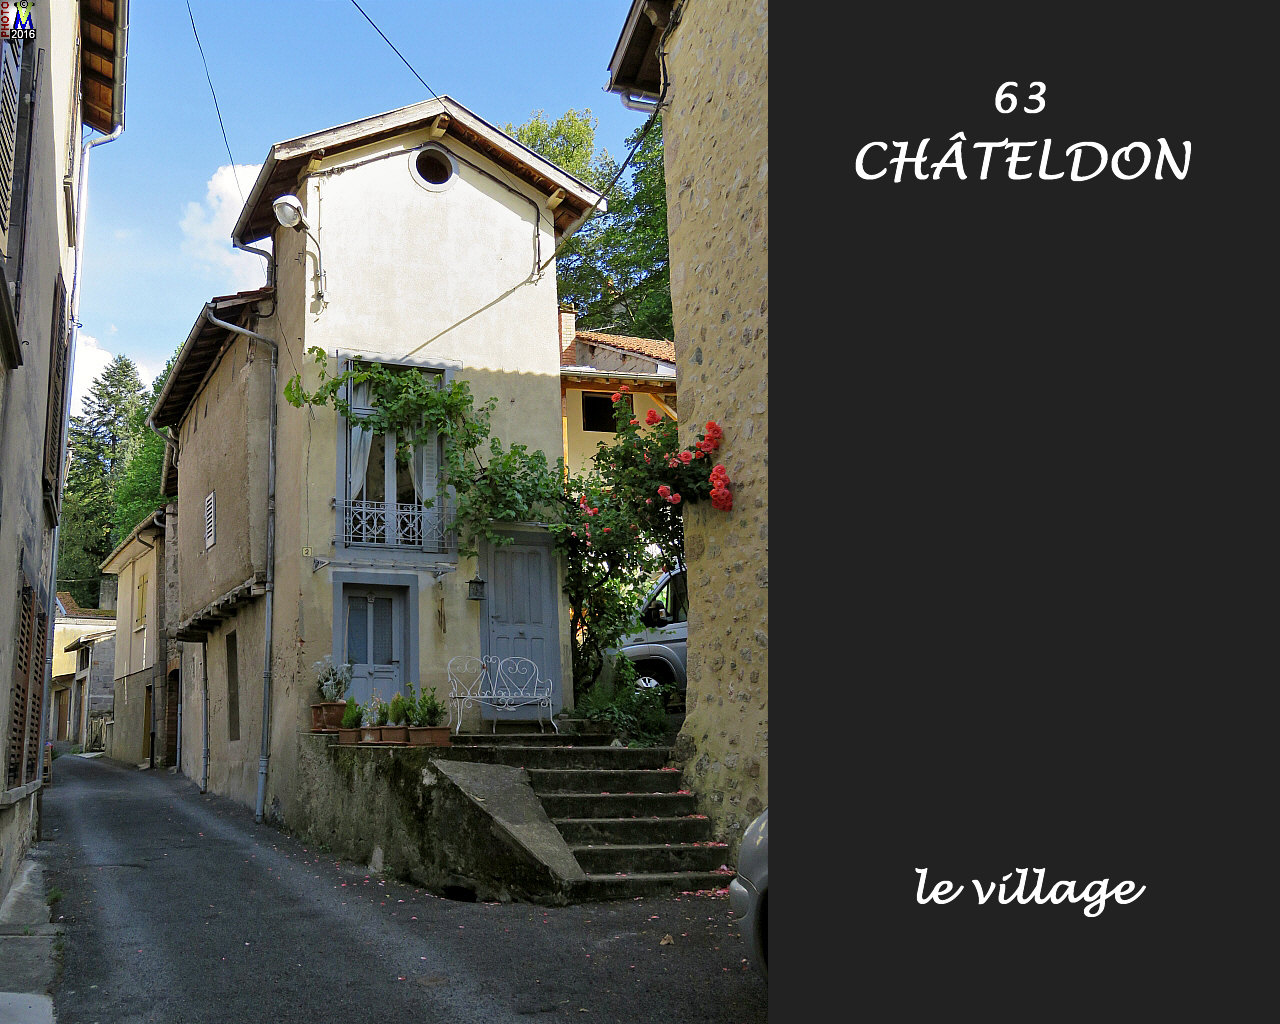 63CHATELDON_village_130.jpg